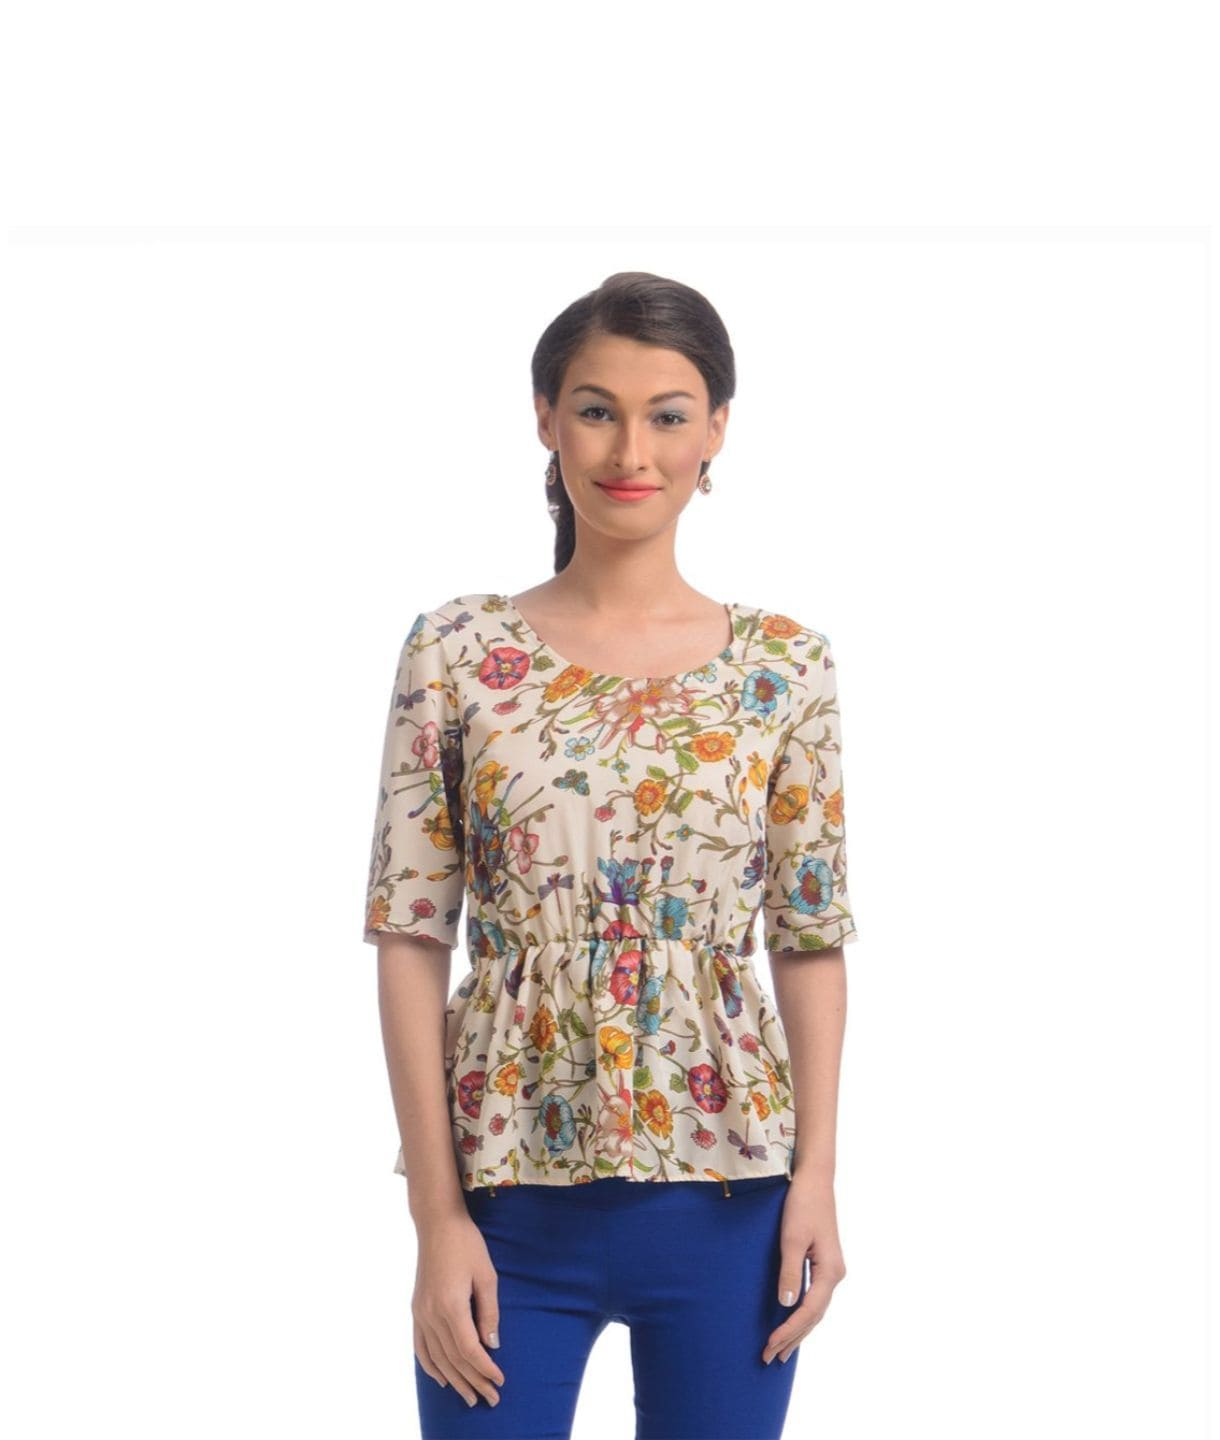 The Wonderfully Woman Peplum Top